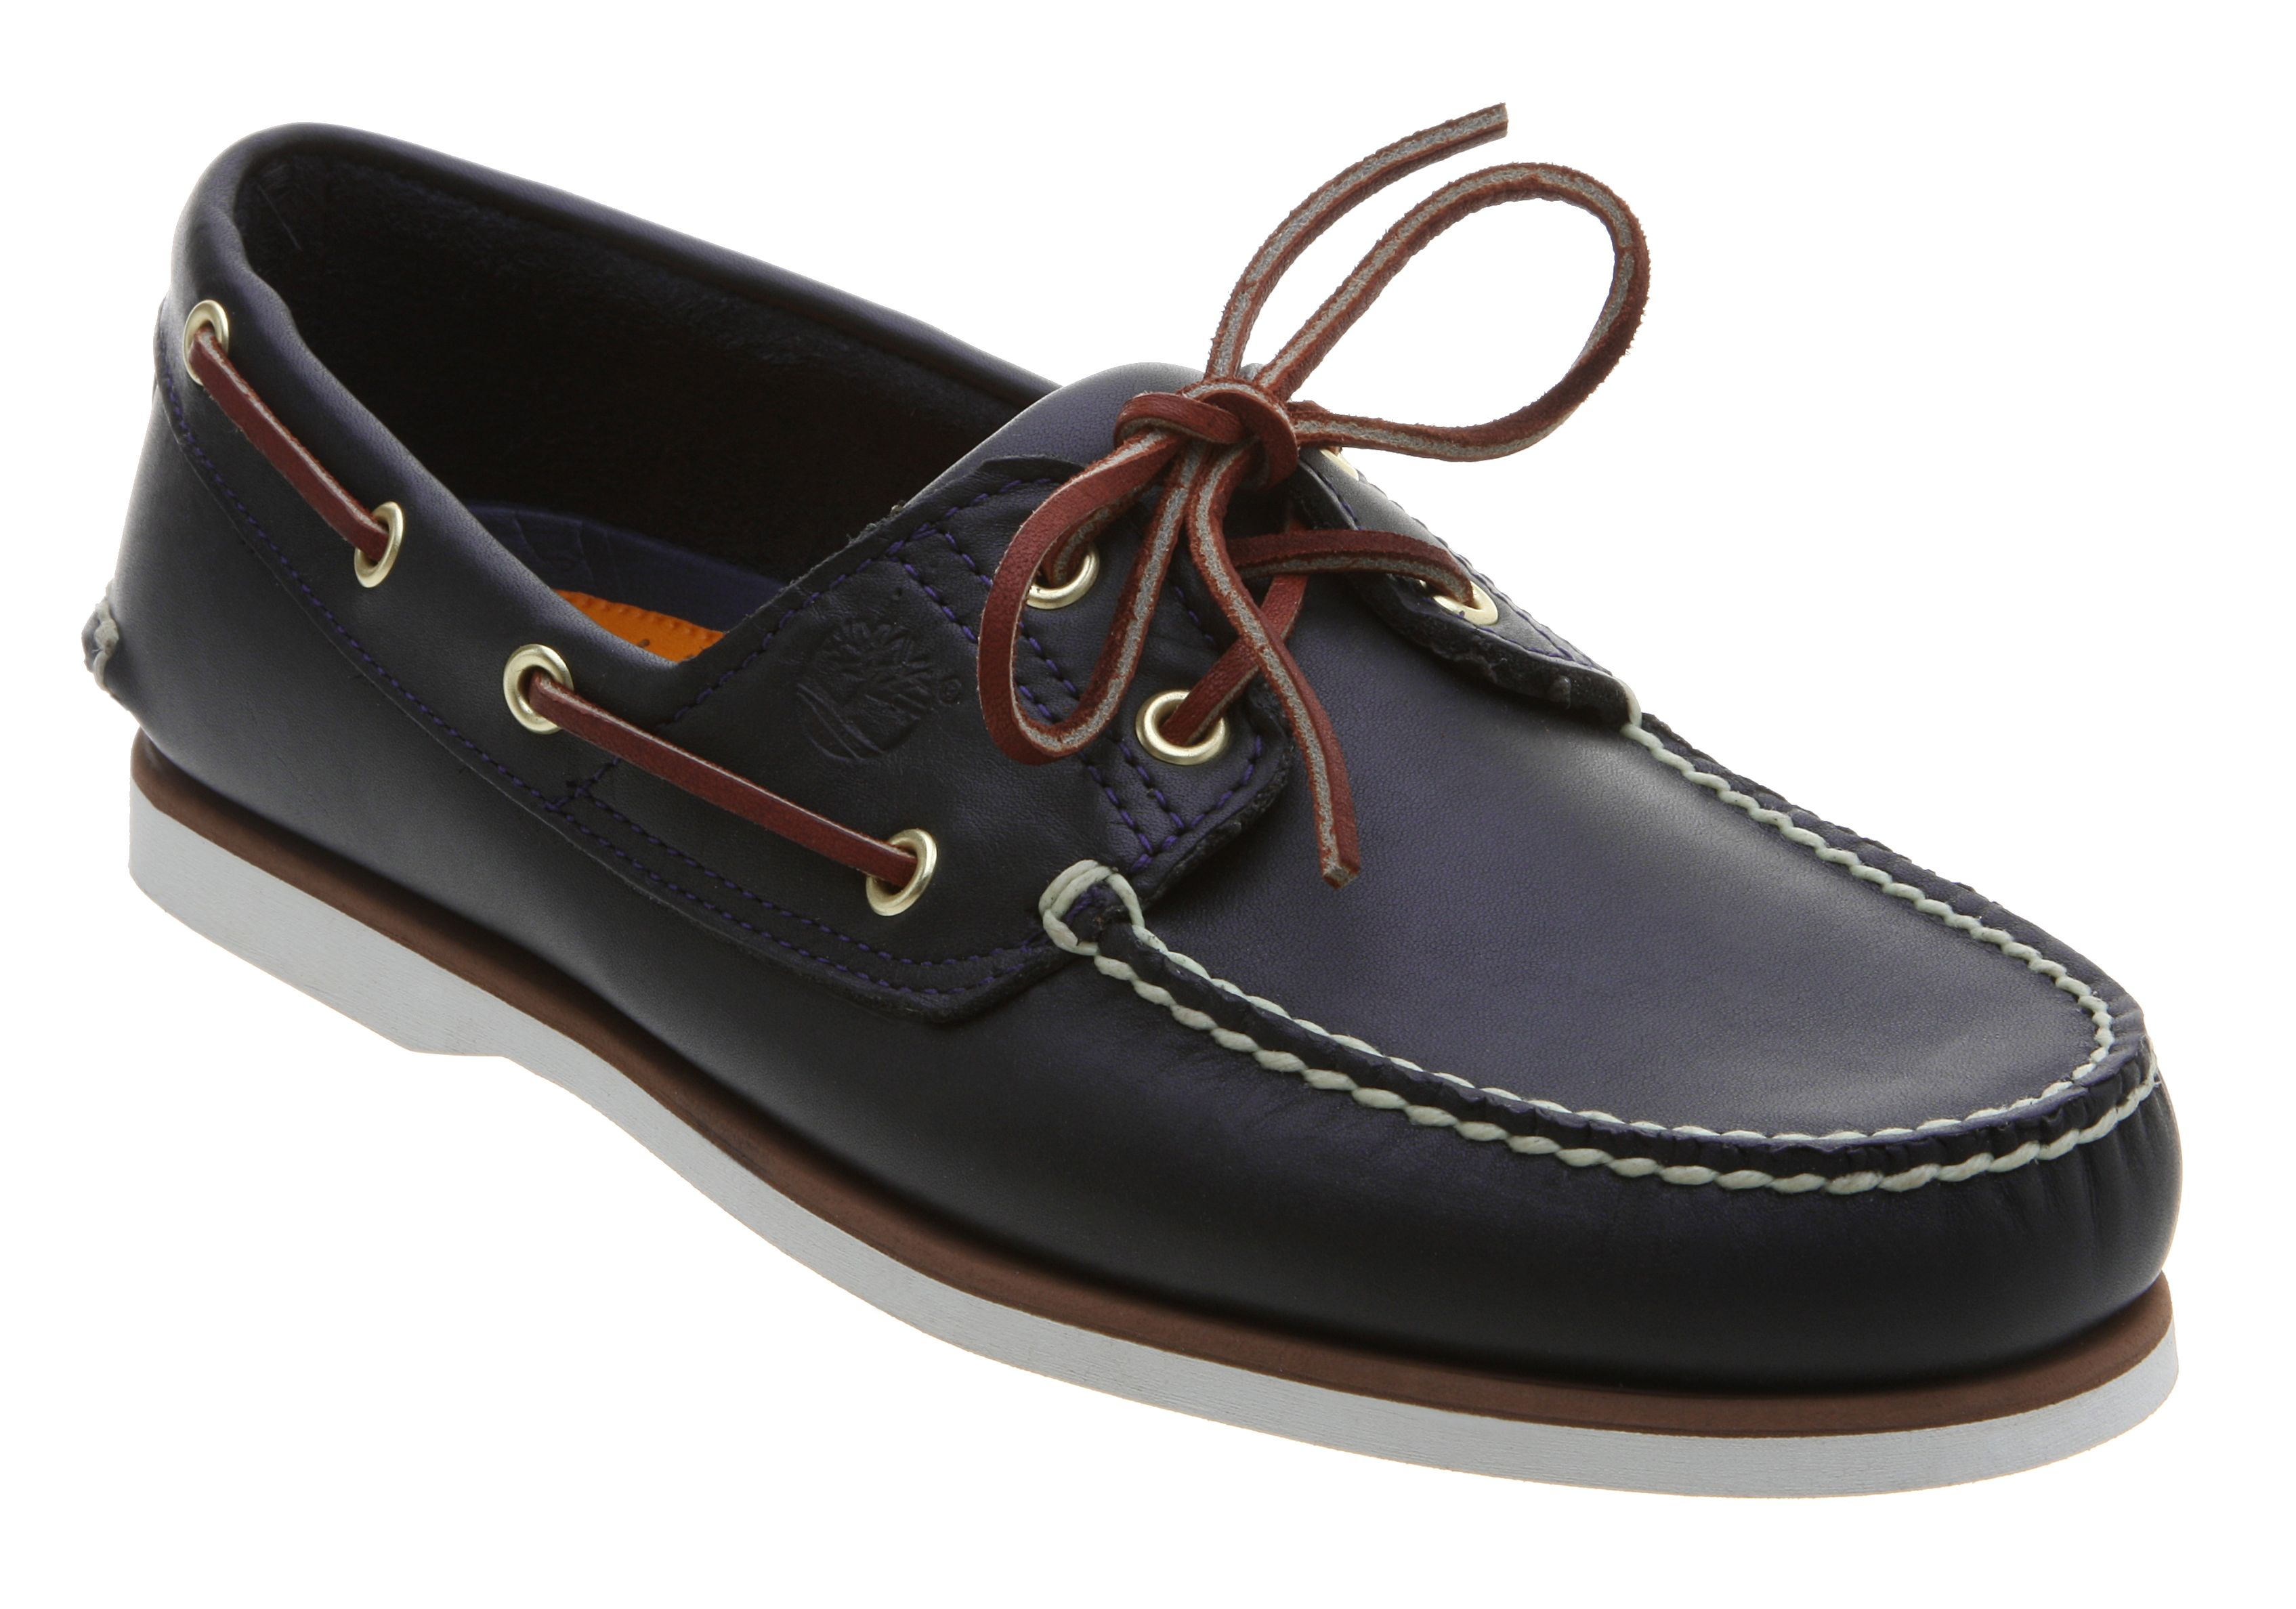 timberland boat shoe exclusive navy tan leather